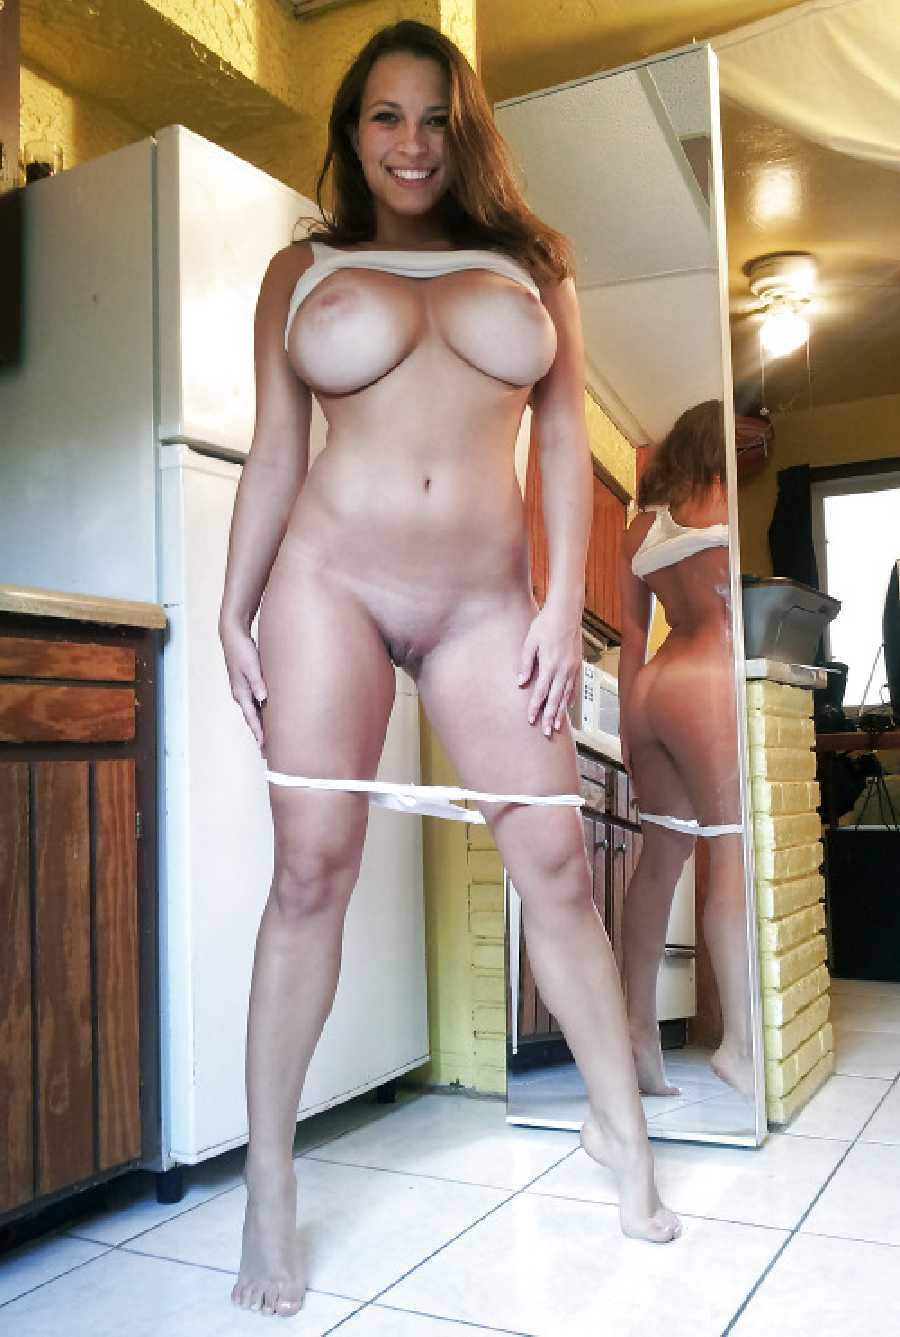 sexy nude milf photos - free sex hookup sites!